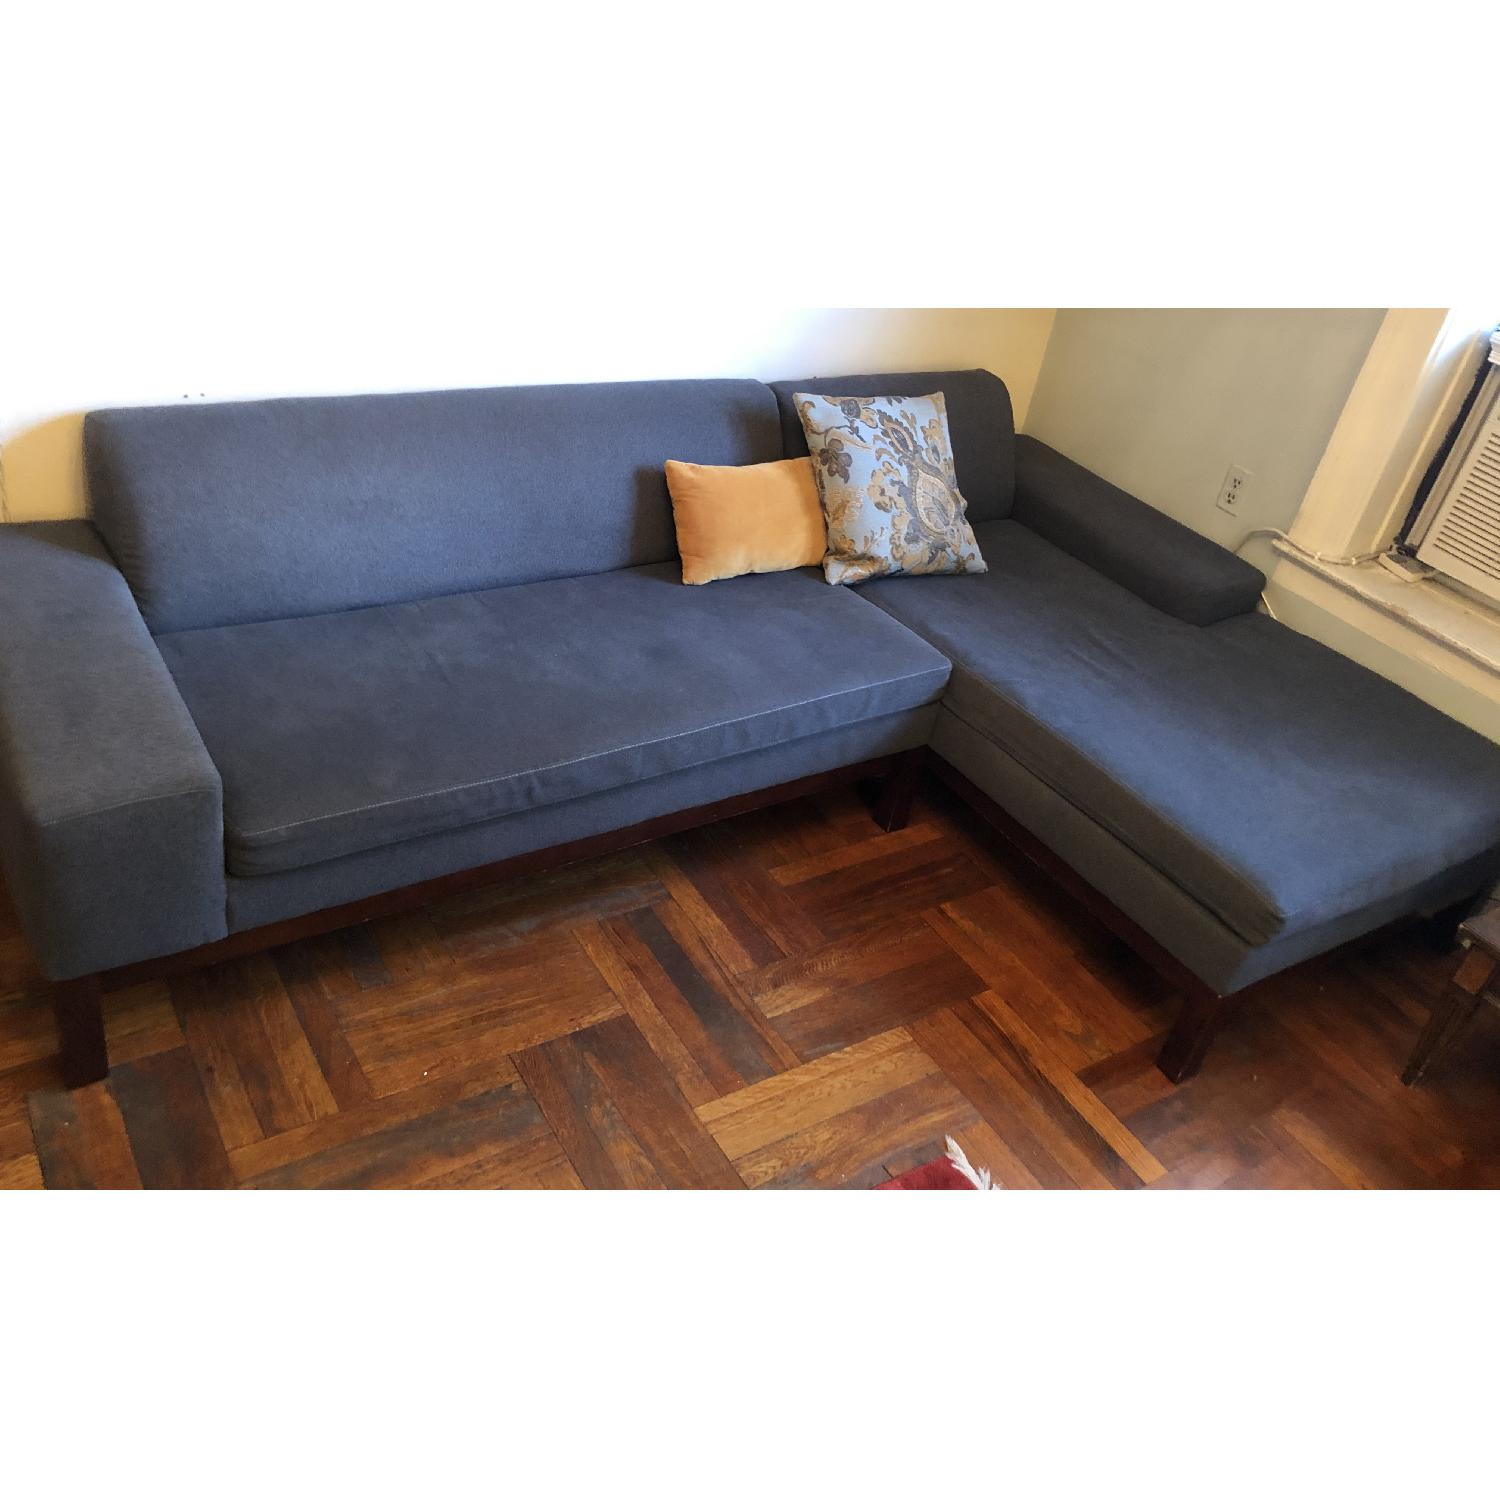 West Elm Sectional Sofa w/ Chaise - image-2